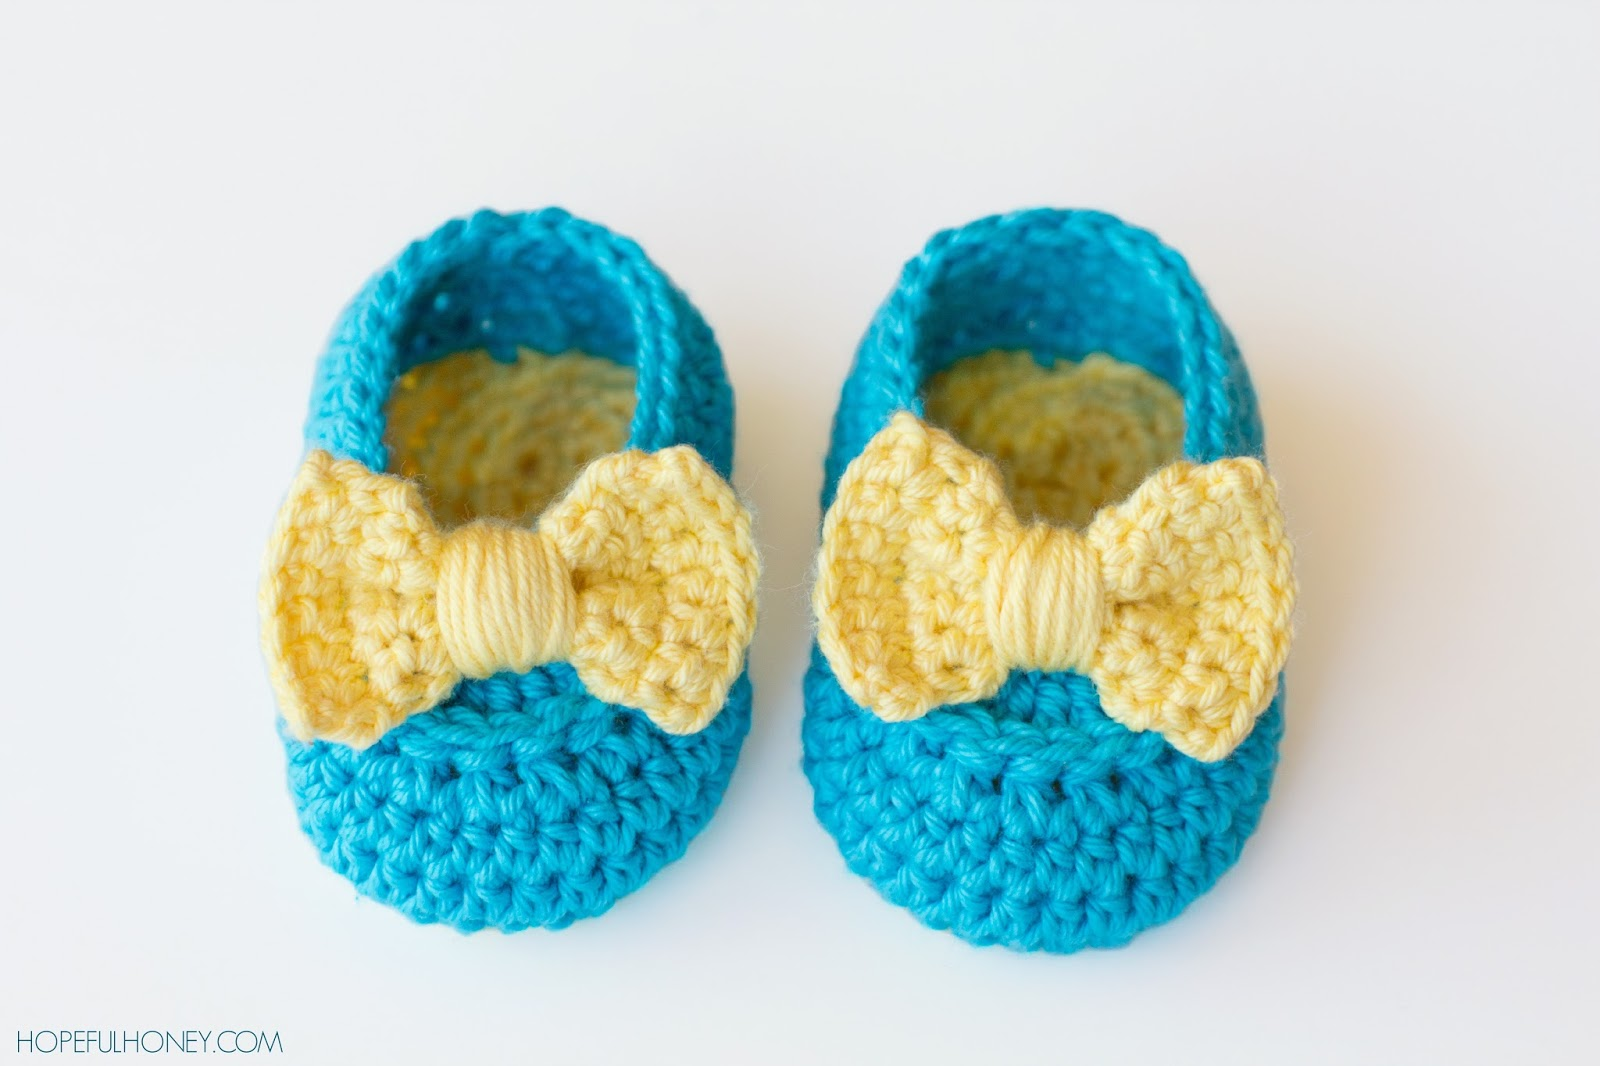 Easy Baby Crochet Patterns Magnificent Inspiration Ideas